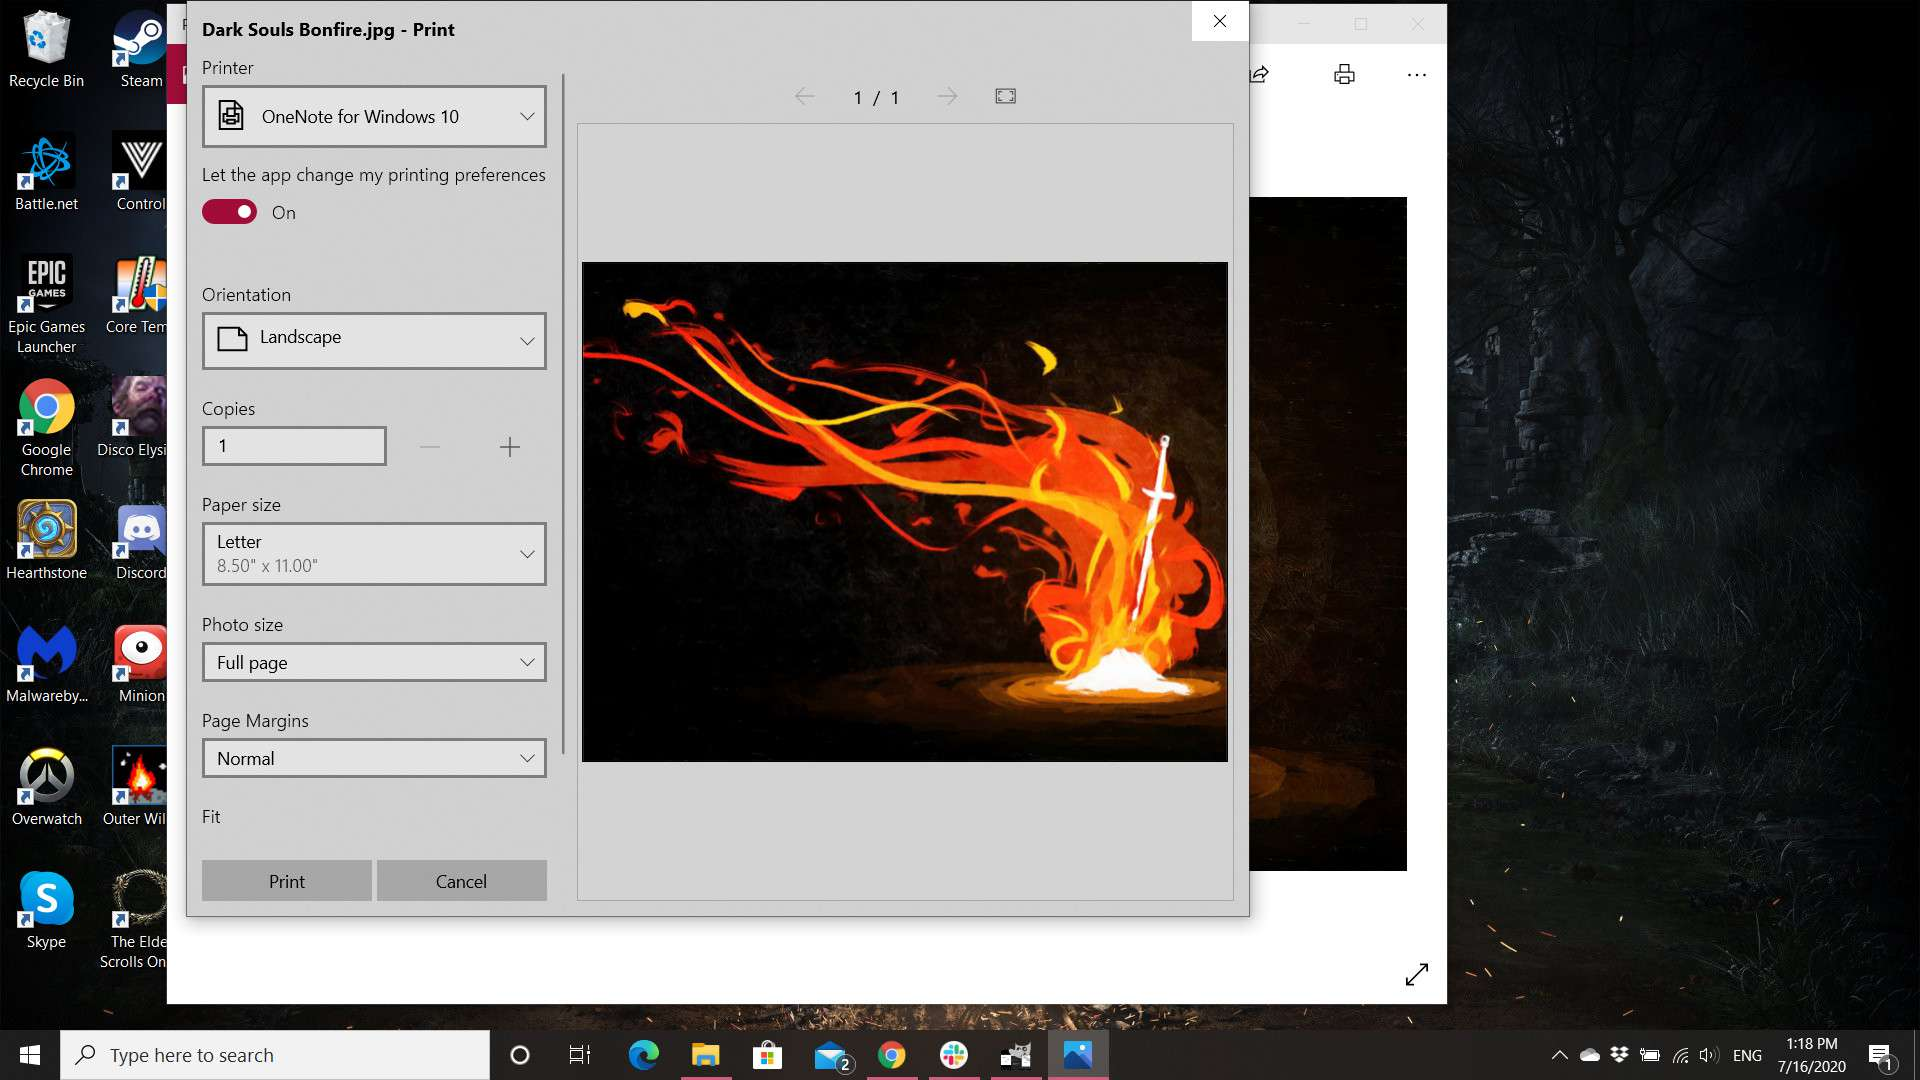 You can change paper size, orientation, and more in the Photos app for Windows